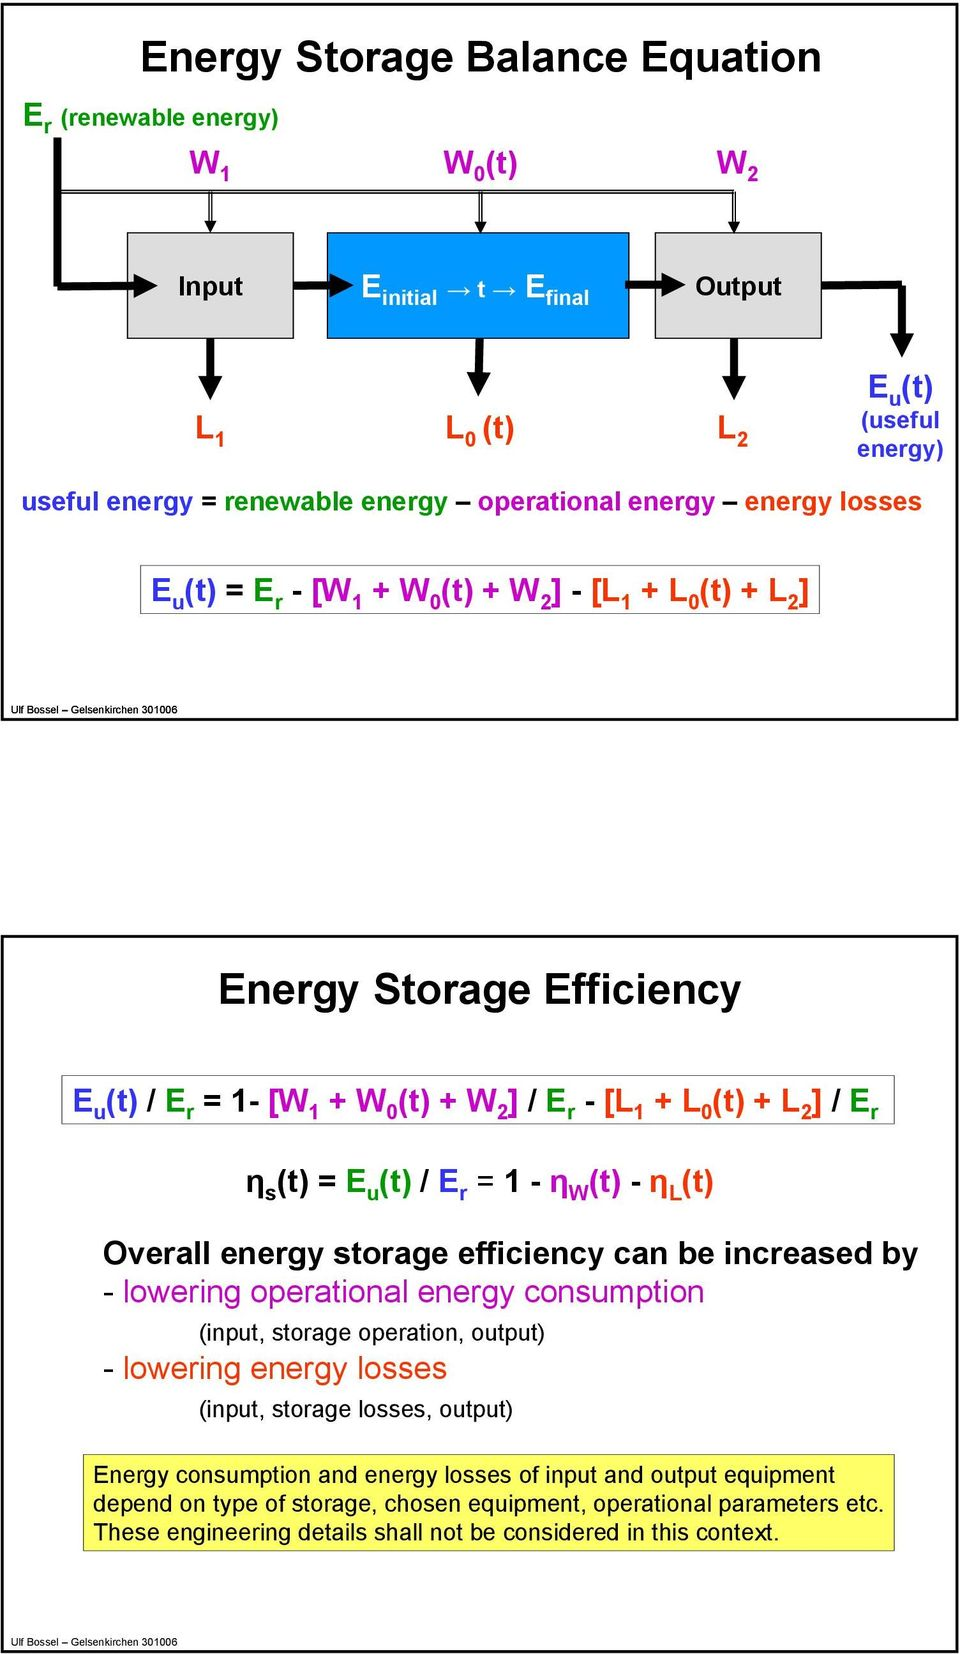 W (t) - η L (t) Overall energy storage efficiency can be increased by - lowering operational energy consumption (input, storage operation, output) - lowering energy losses (input, storage losses,